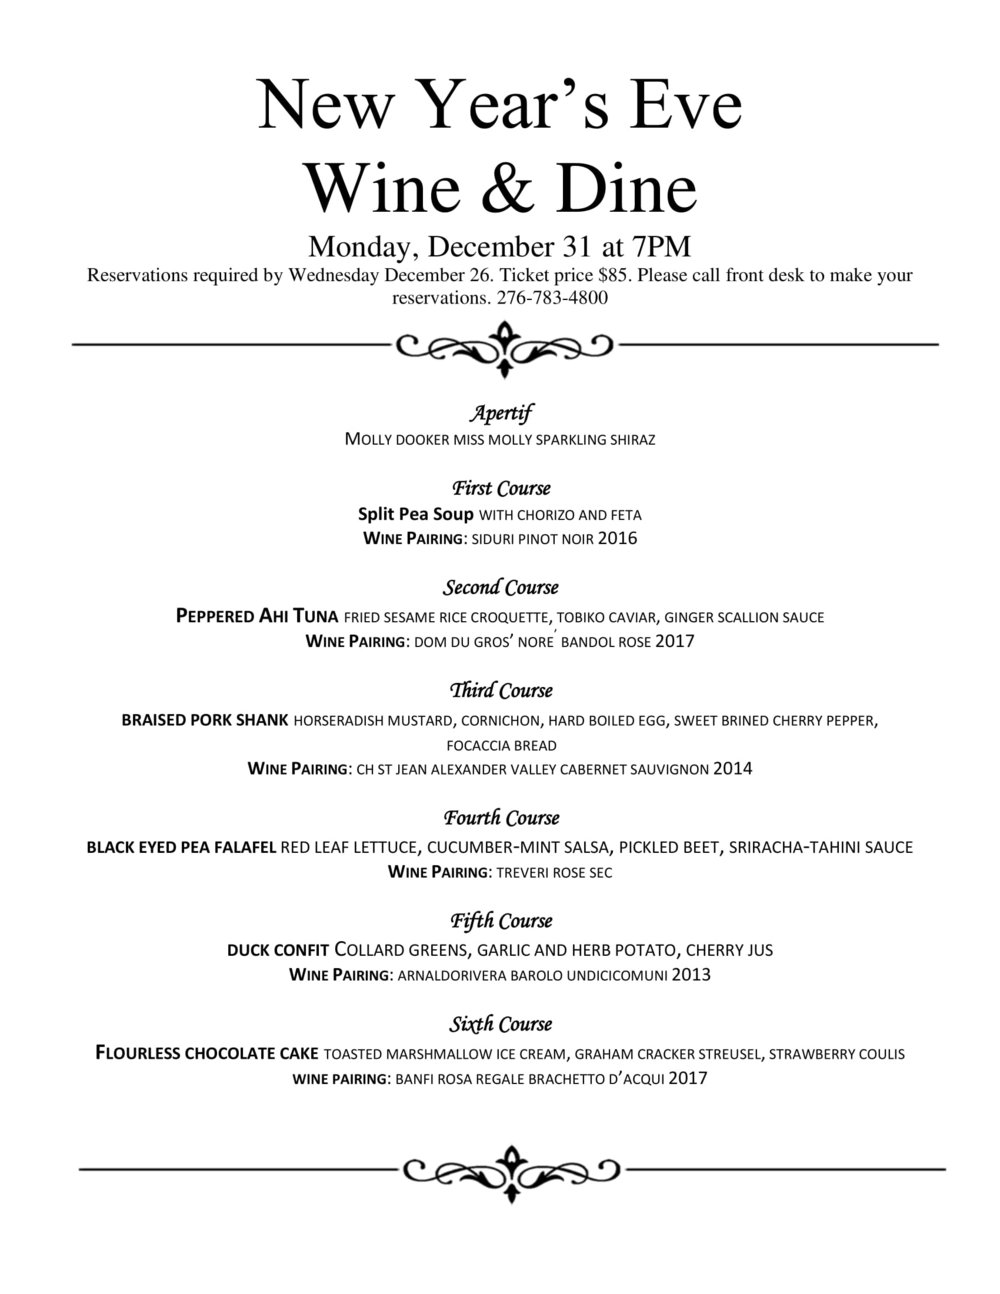 Final NYE Wine & Dine Menu-1.jpg